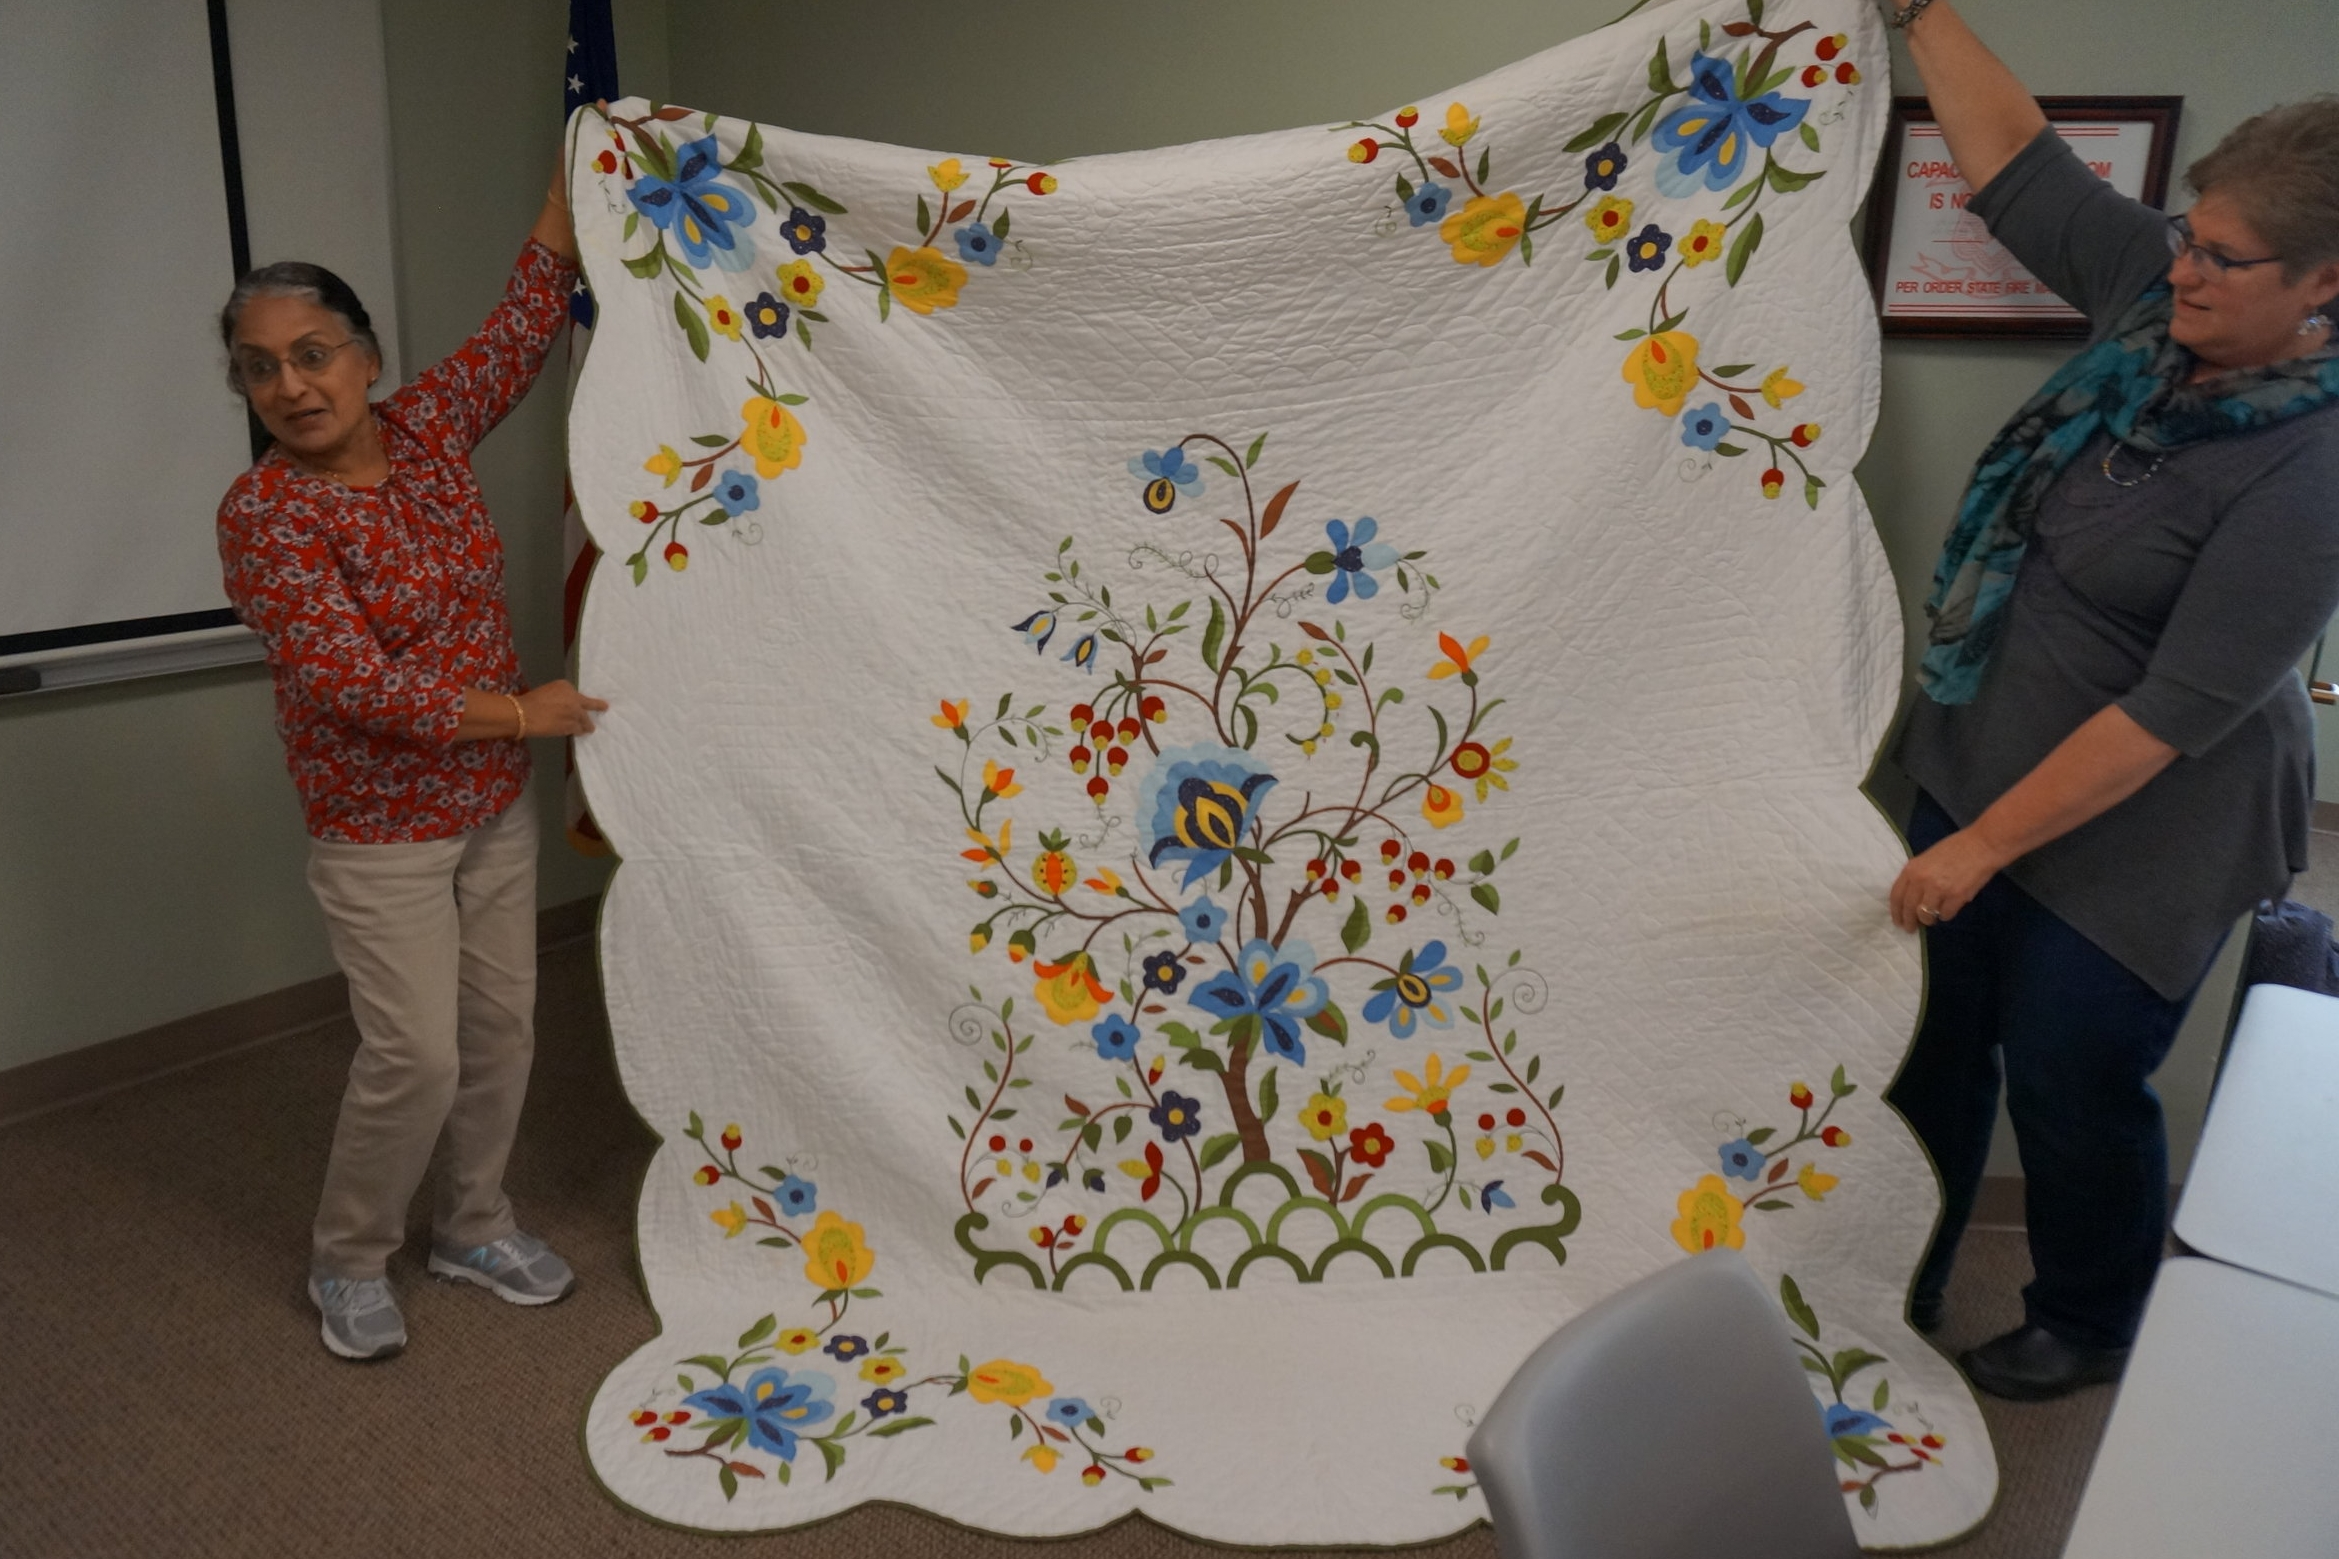 - Indira learned to quilt when she moved to the U.S. and was inspired to make a quilt that took two years to hand applique.